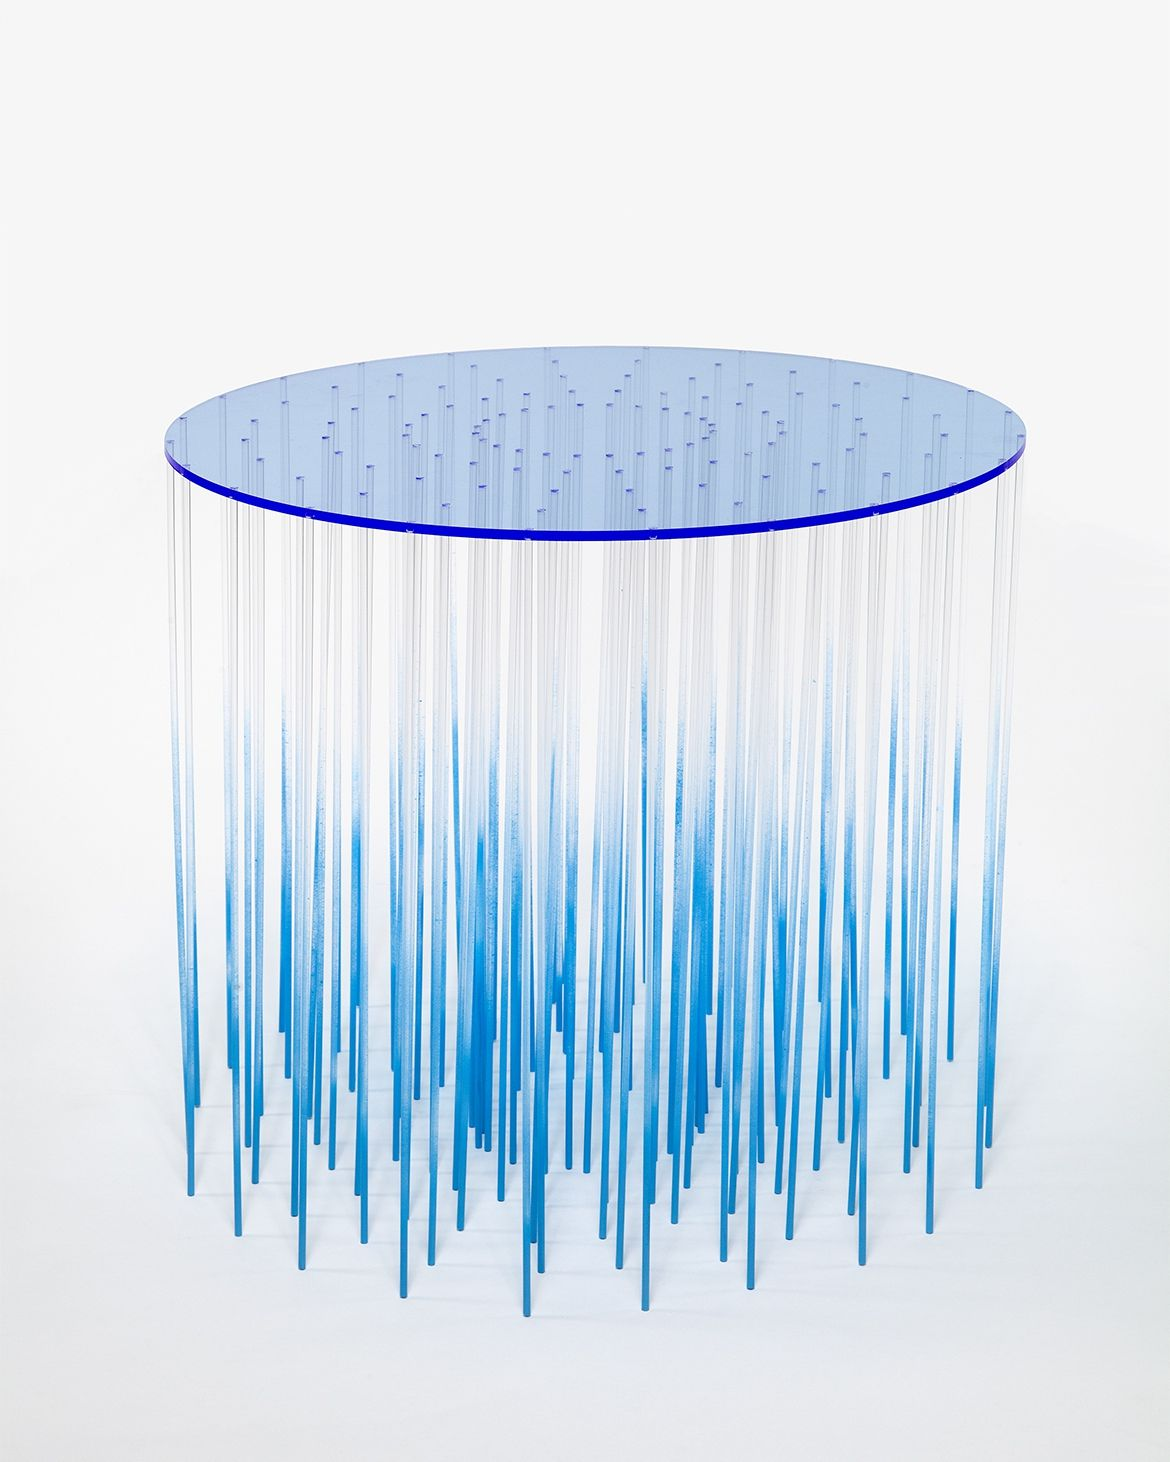 Ripple Table by Chicago-based Chinese designer Jing Ouyang / theartling.com